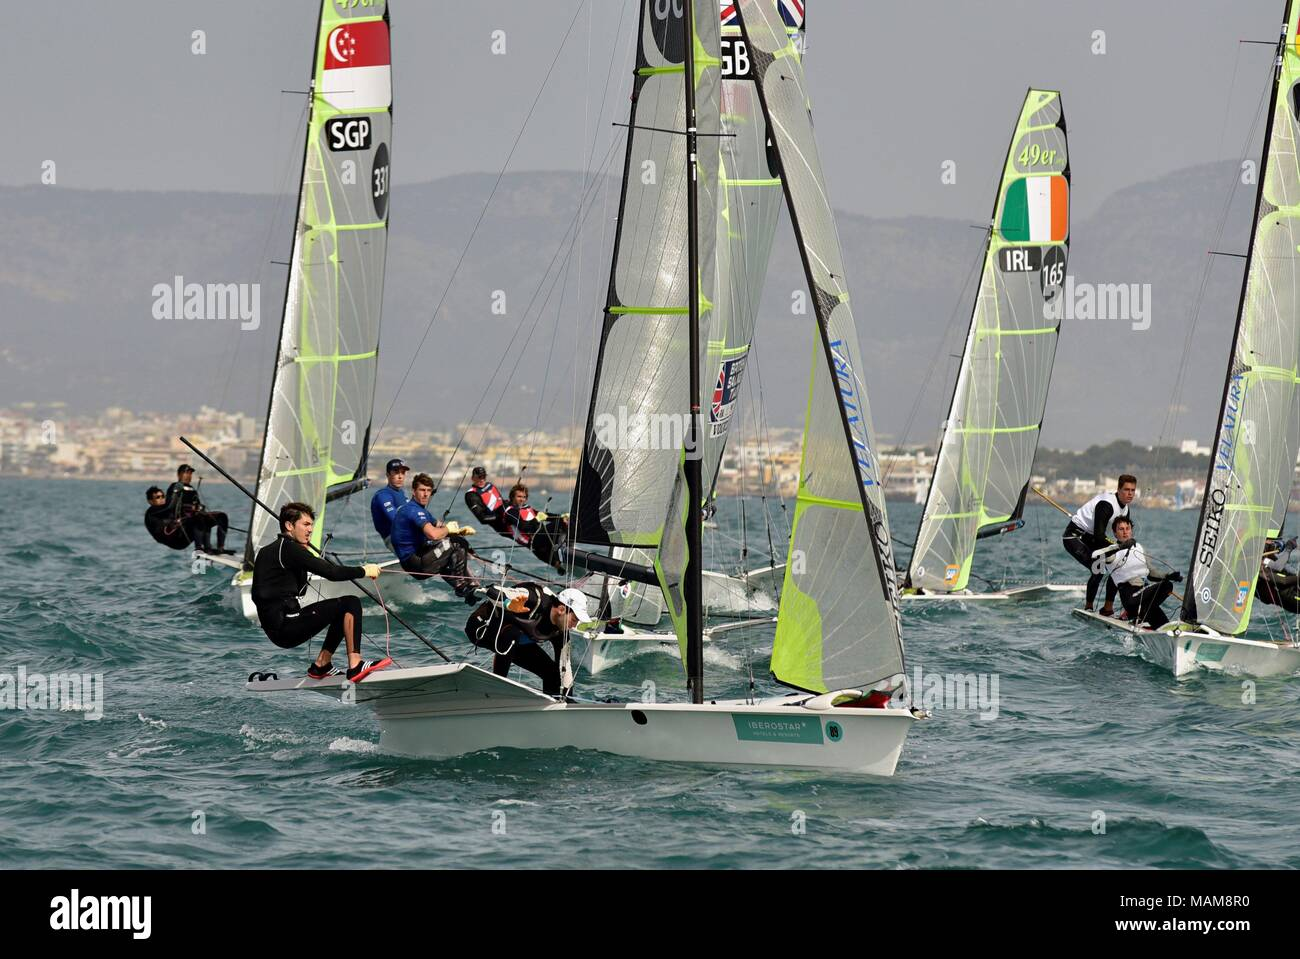 Spanish yatchsmen uan Emilio Bedia and Víctor Perez (forward) compete in the 49er category during the 49th Princess Sofia Sailing Trophy, celebrated at Palma's Bay in Majorca, Spain, 03 April 2018. EFE/Atienza - Stock Image